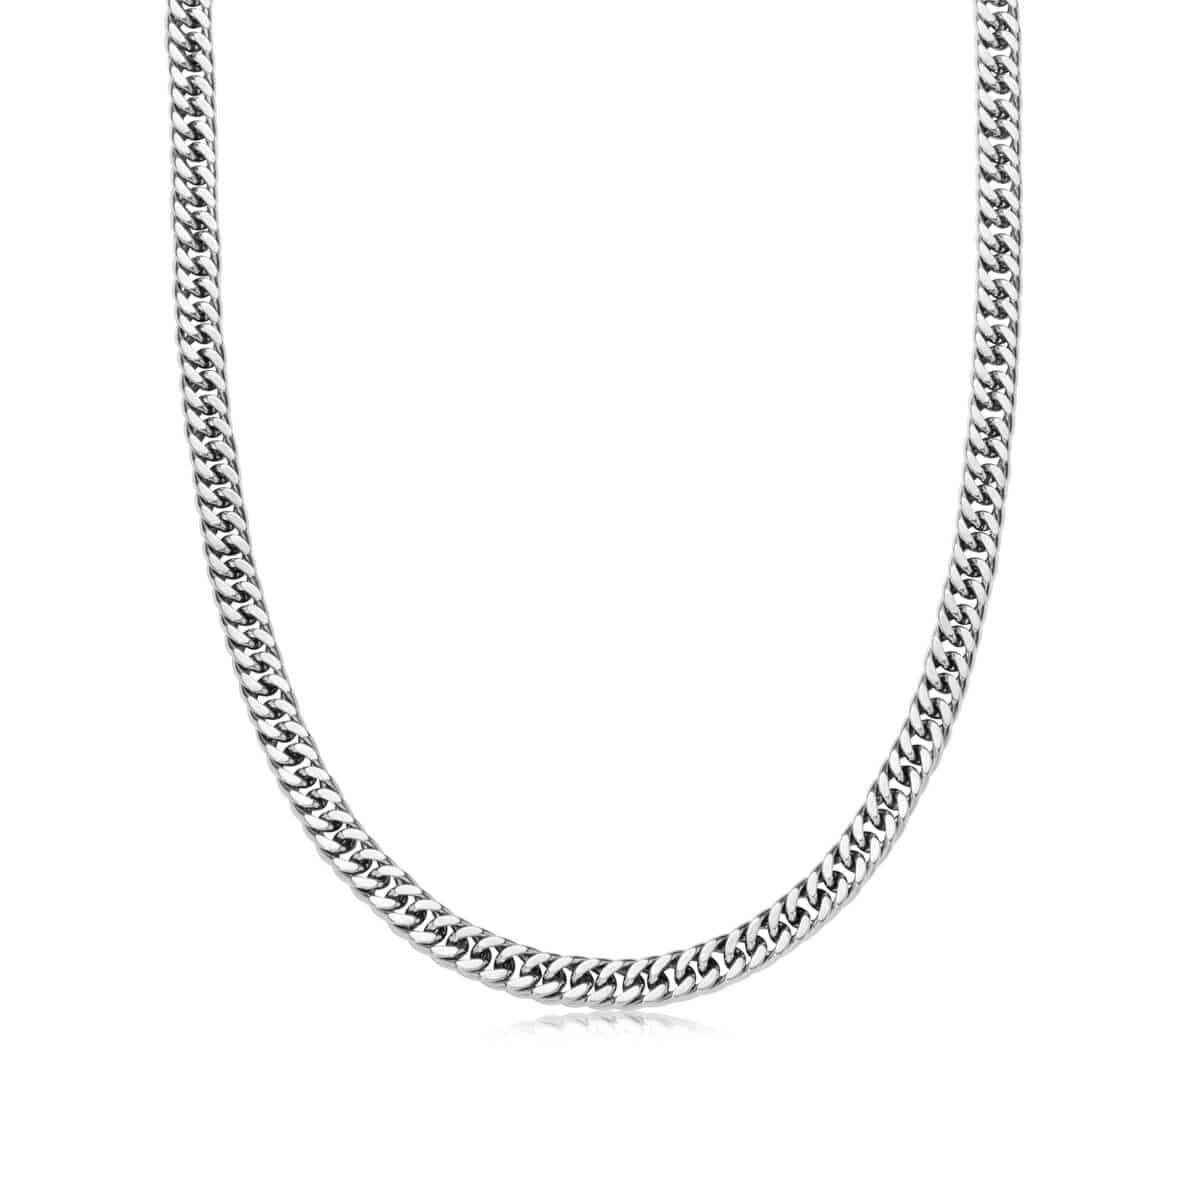 Selected Curb Chain Necklace (Silver)